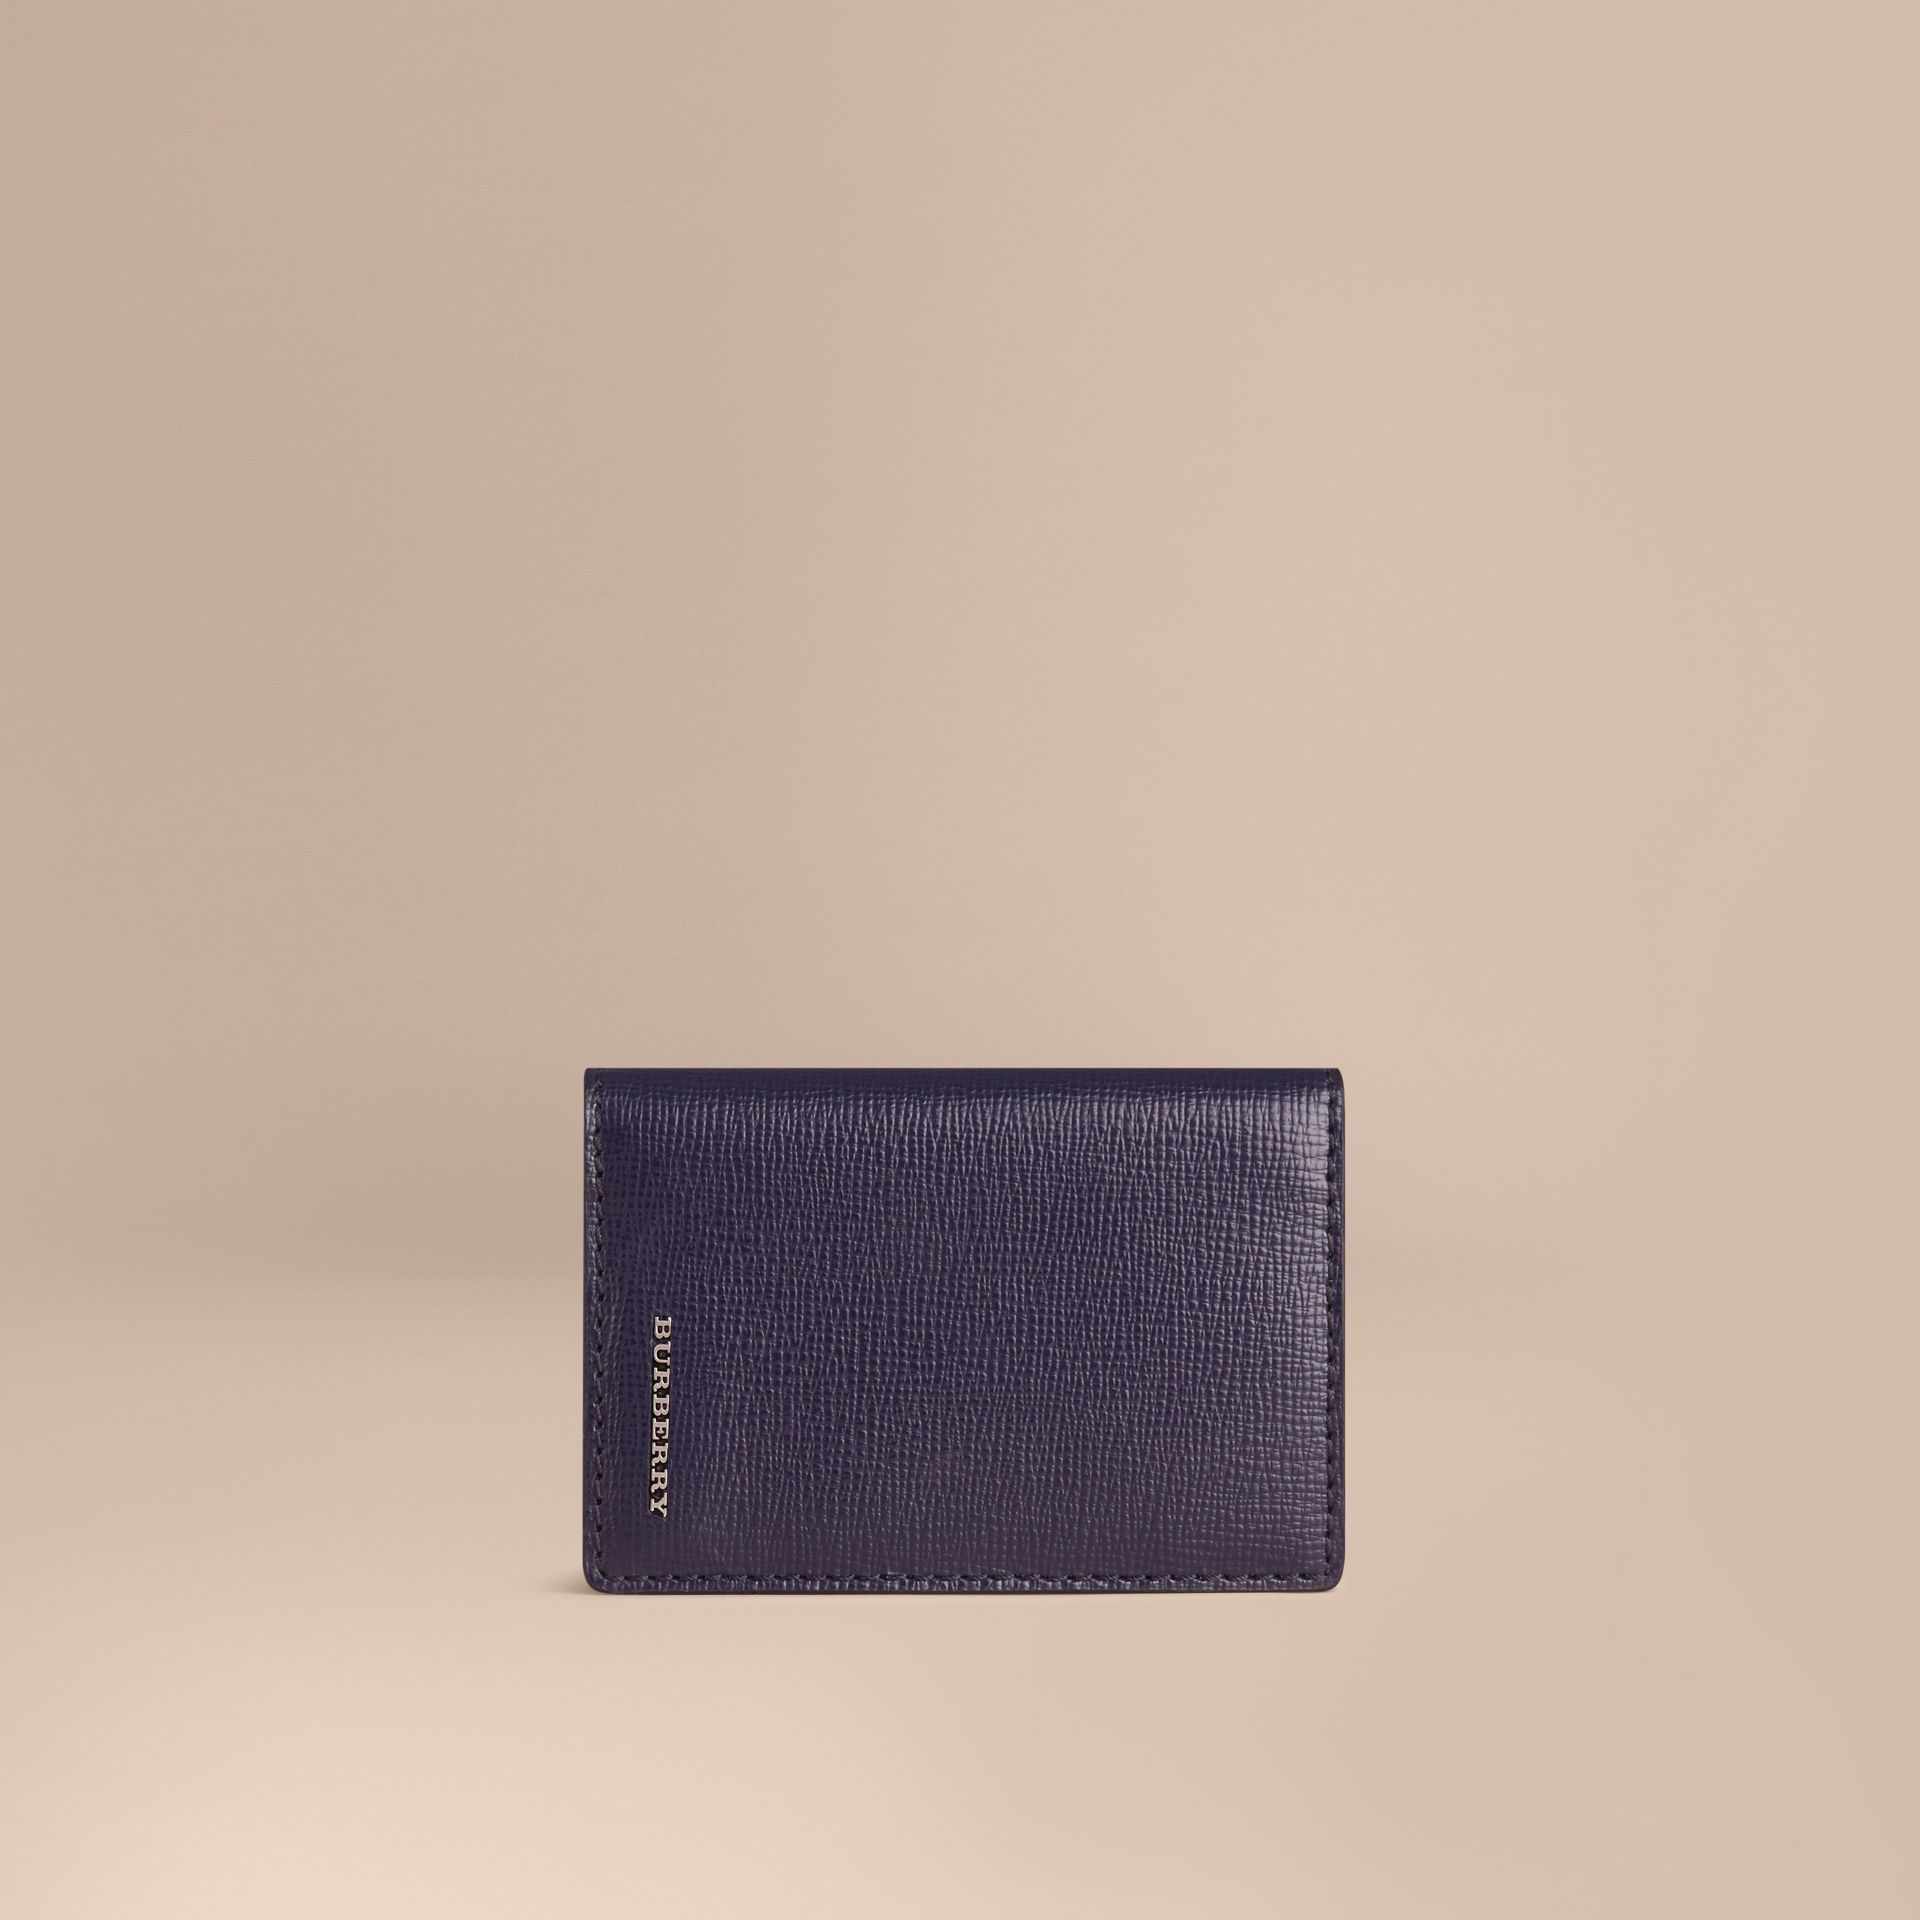 Dark navy London Leather Folding Card Case Dark Navy - gallery image 1